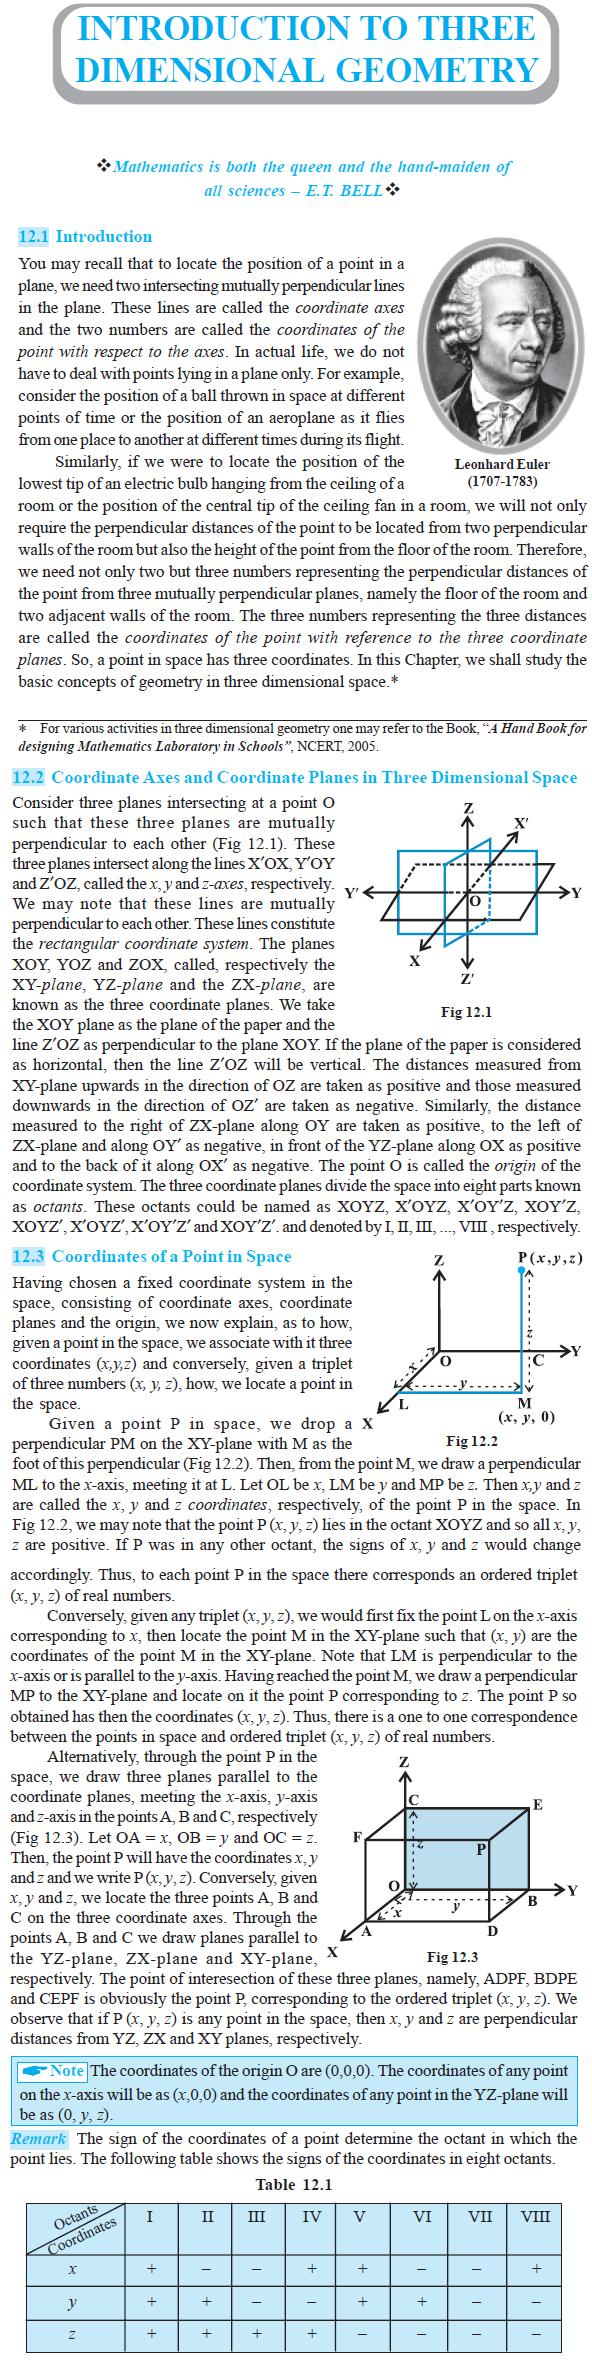 NCERT Class XI Mathematics Chapter 12 – Introduction to Three Dimensional Geometry